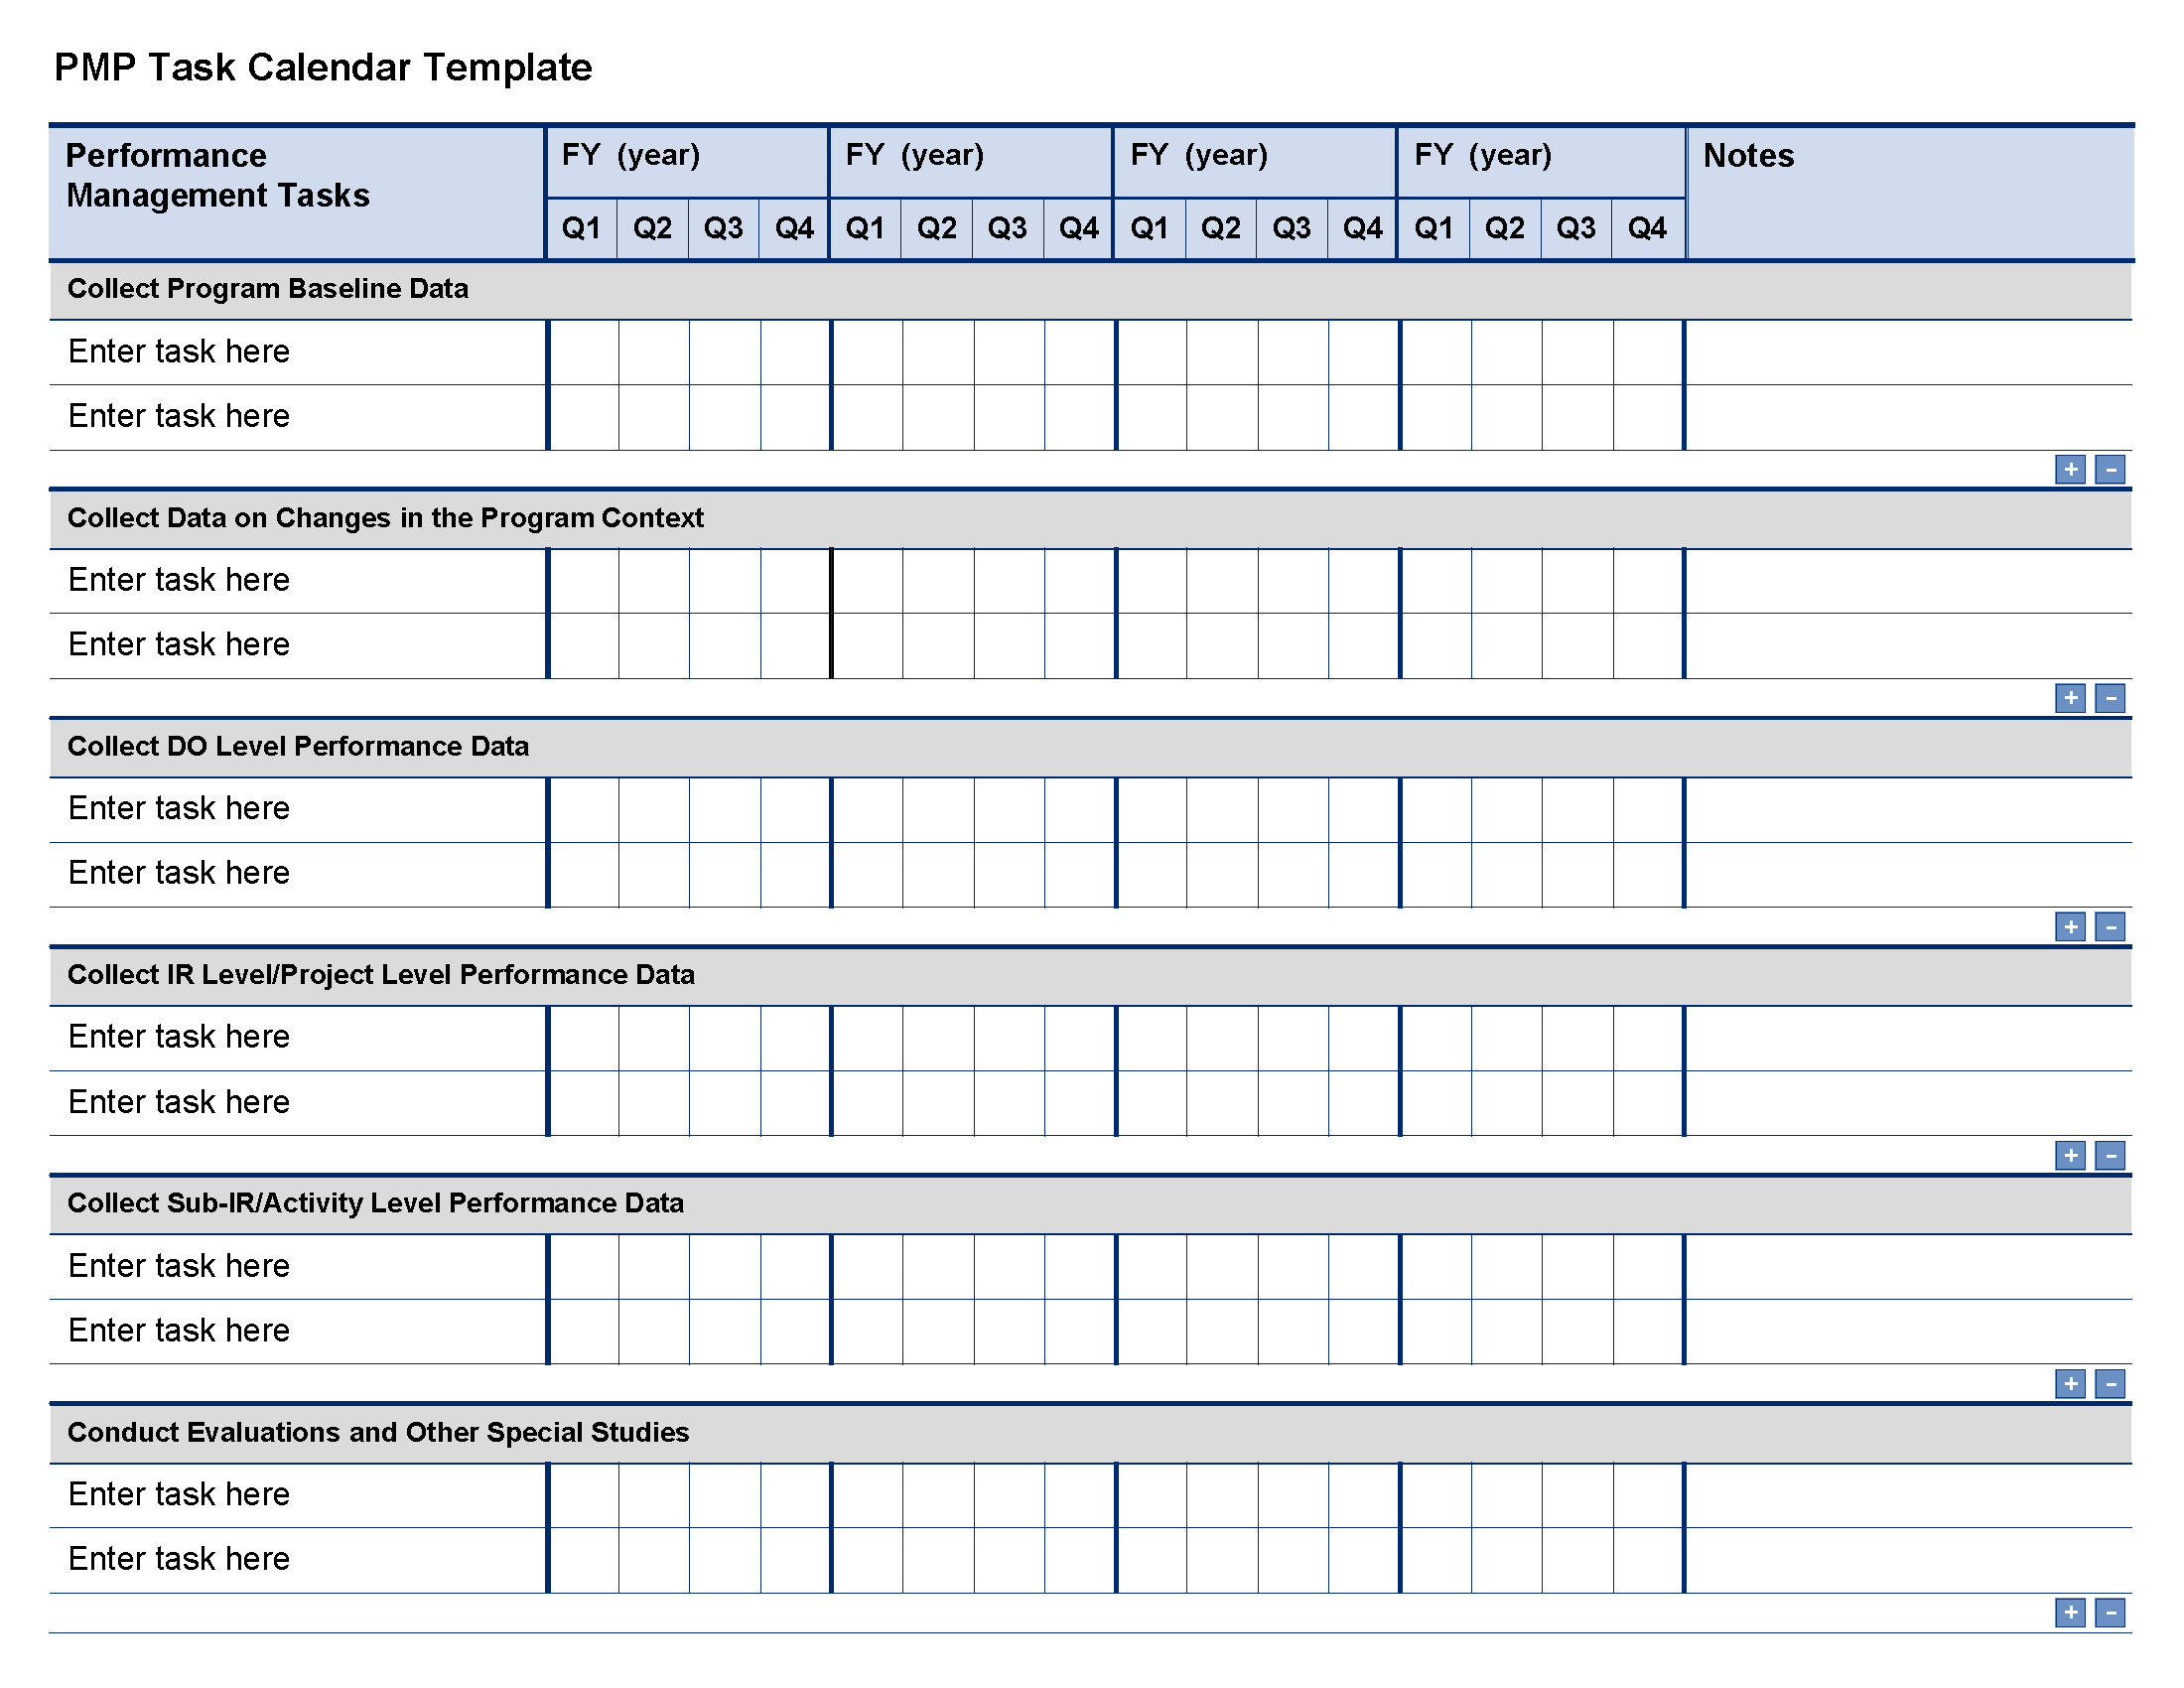 Project Manager Spreadsheet Templates and Pmp Task Calendar Template Project Starter Usaid